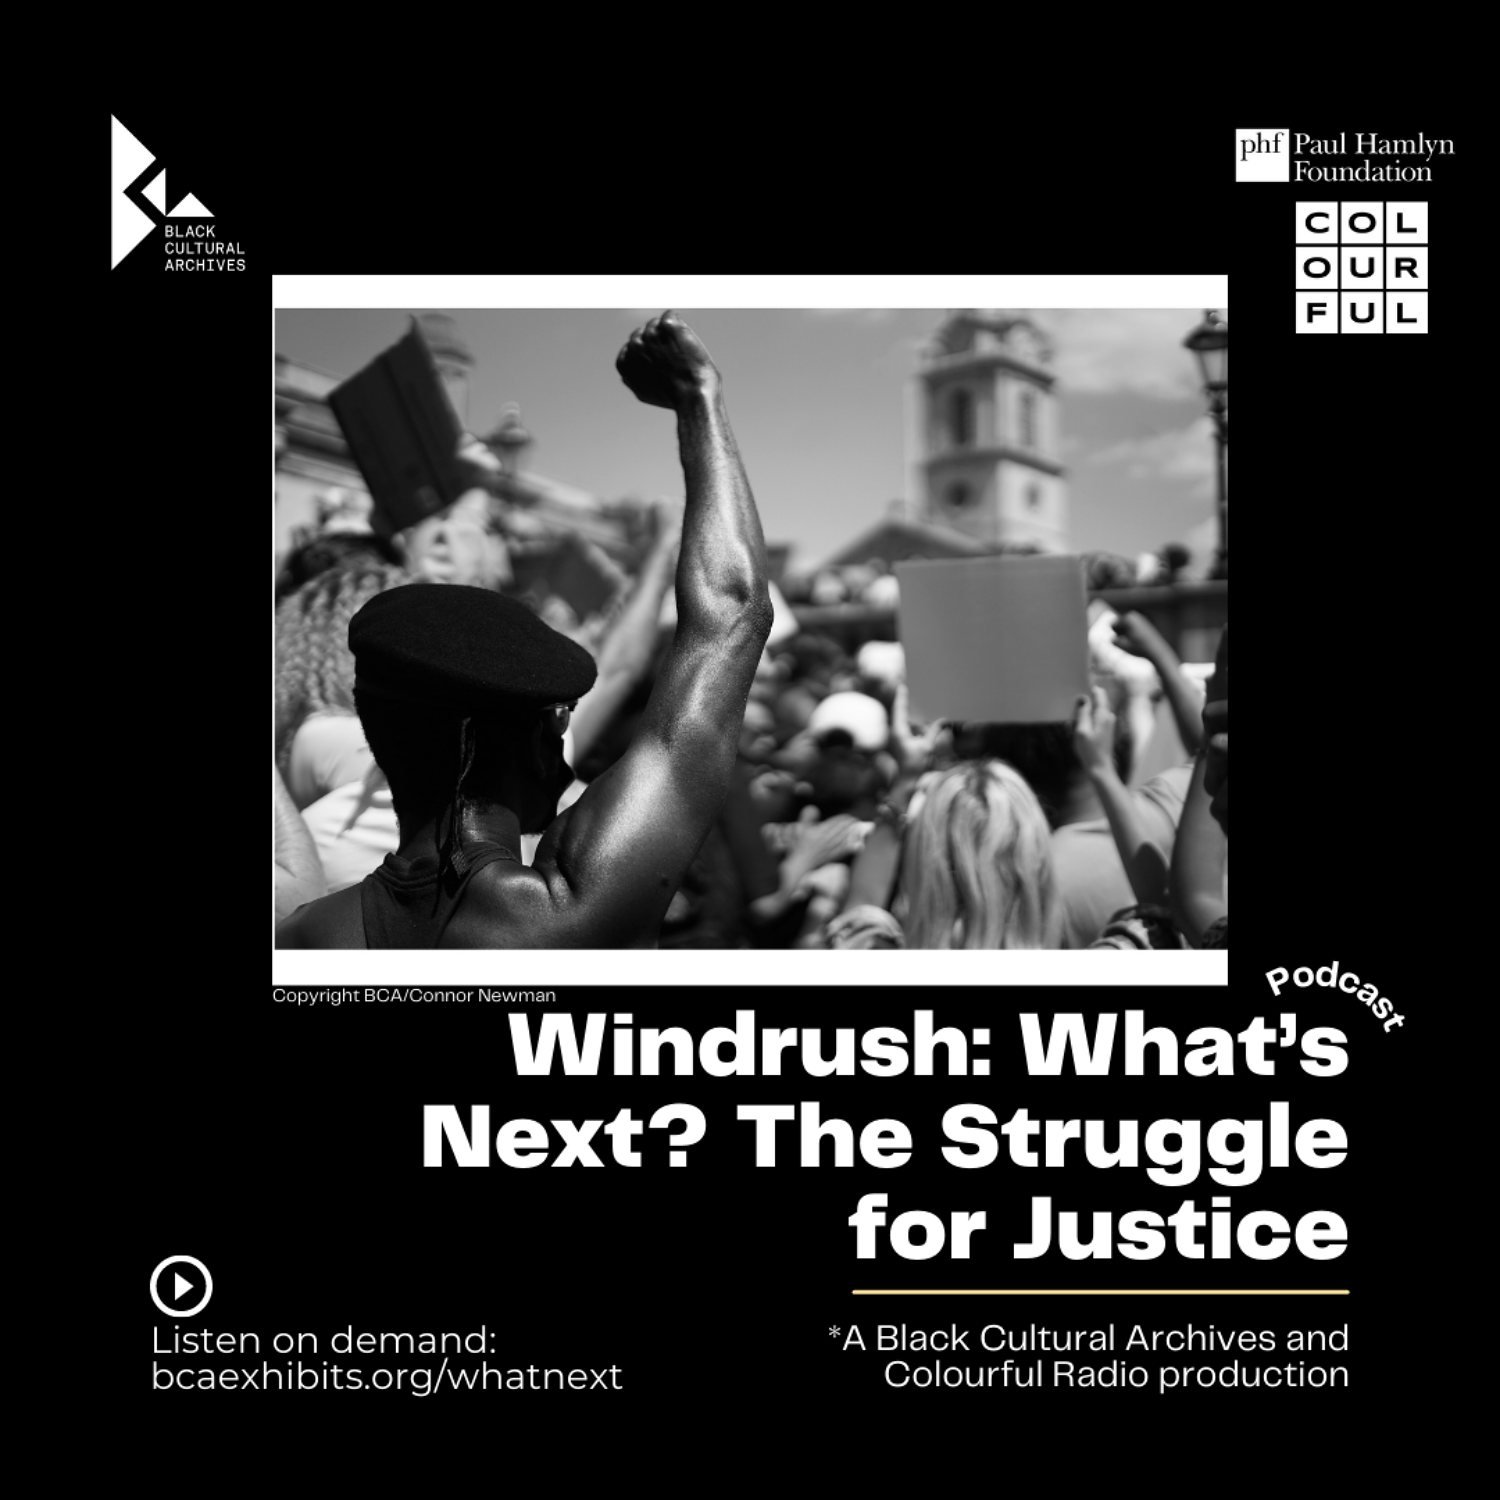 Windrush. What's Next?